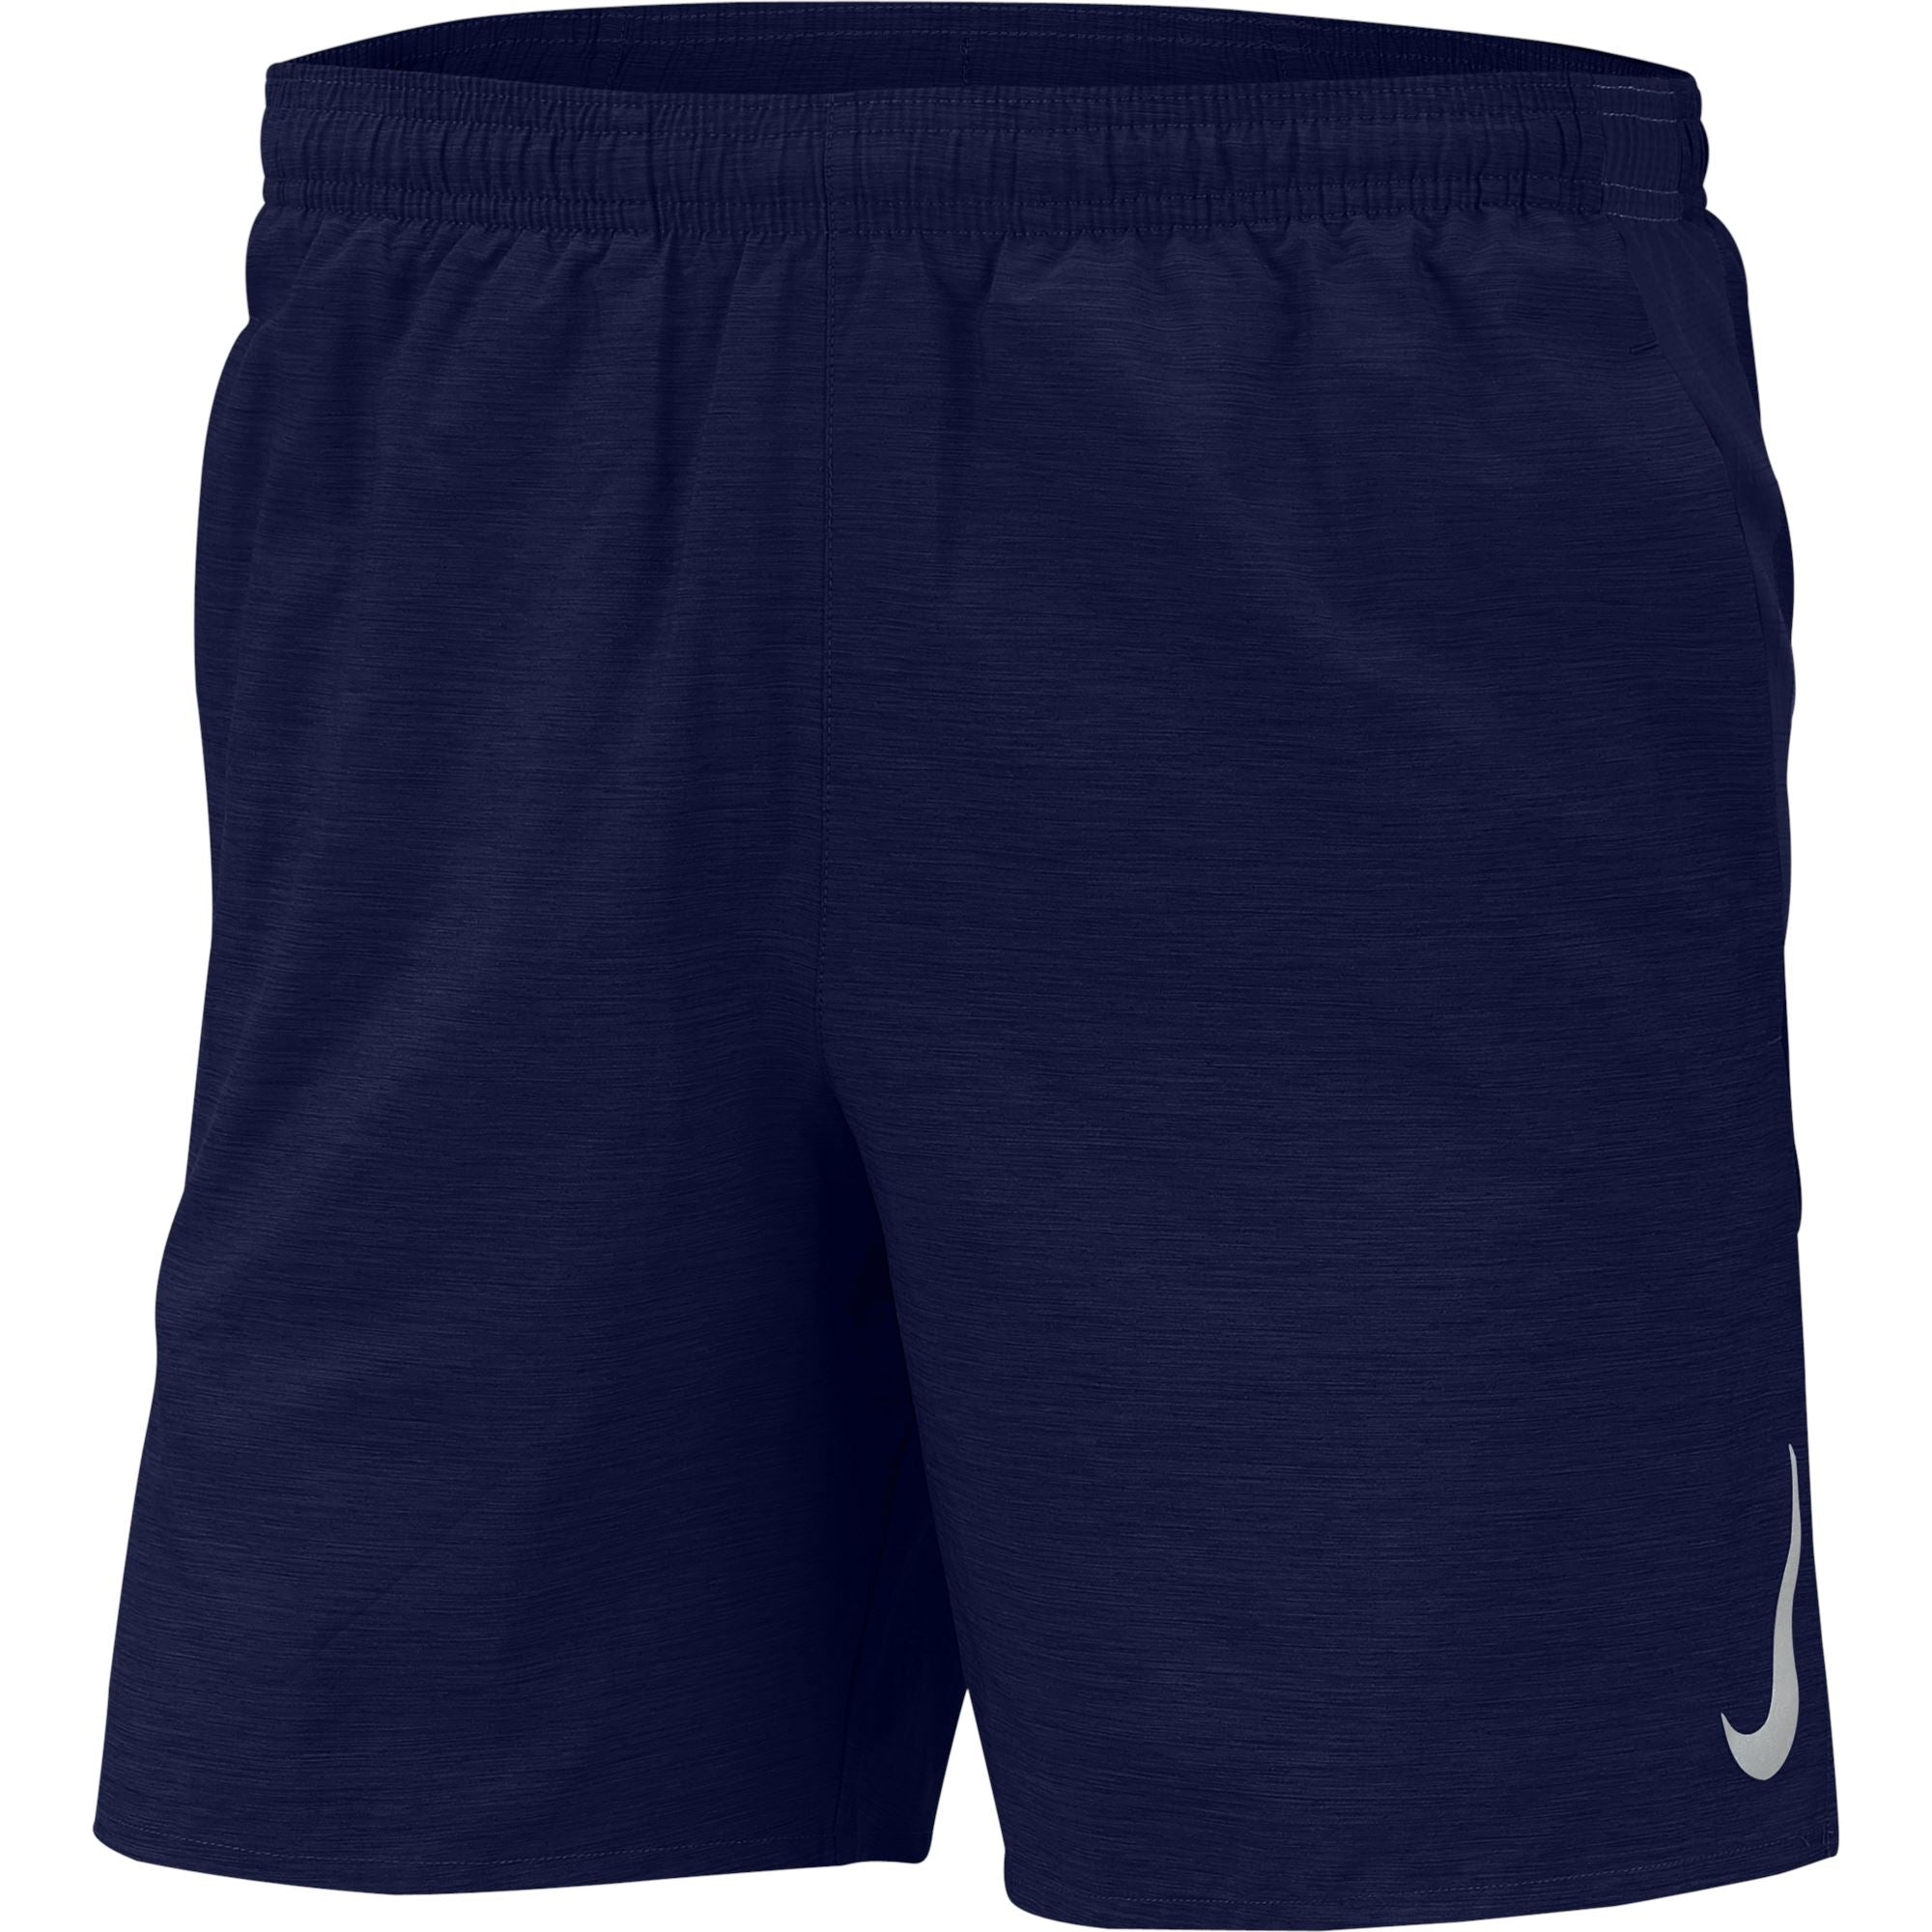 Nike Men's Challenger Running Short 7 Inch - Blue Void/Reflective Silver SP-ApparelShorts-Mens Nike